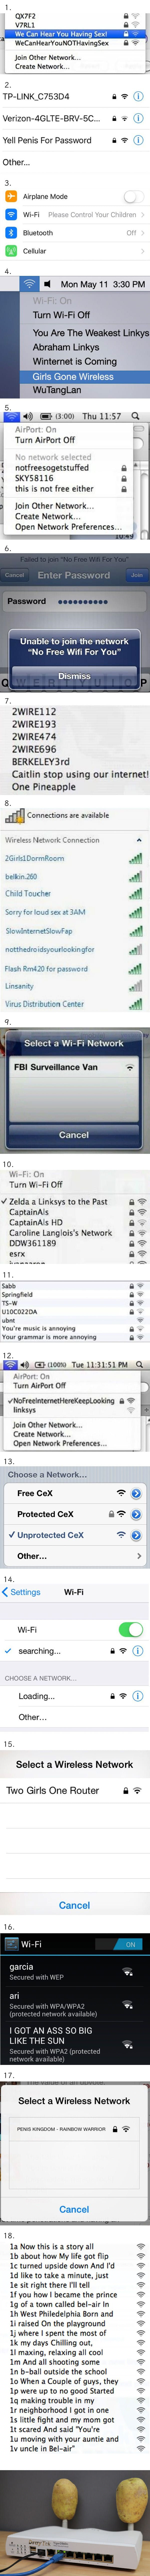 18 WIFI names you'll wish you thought of